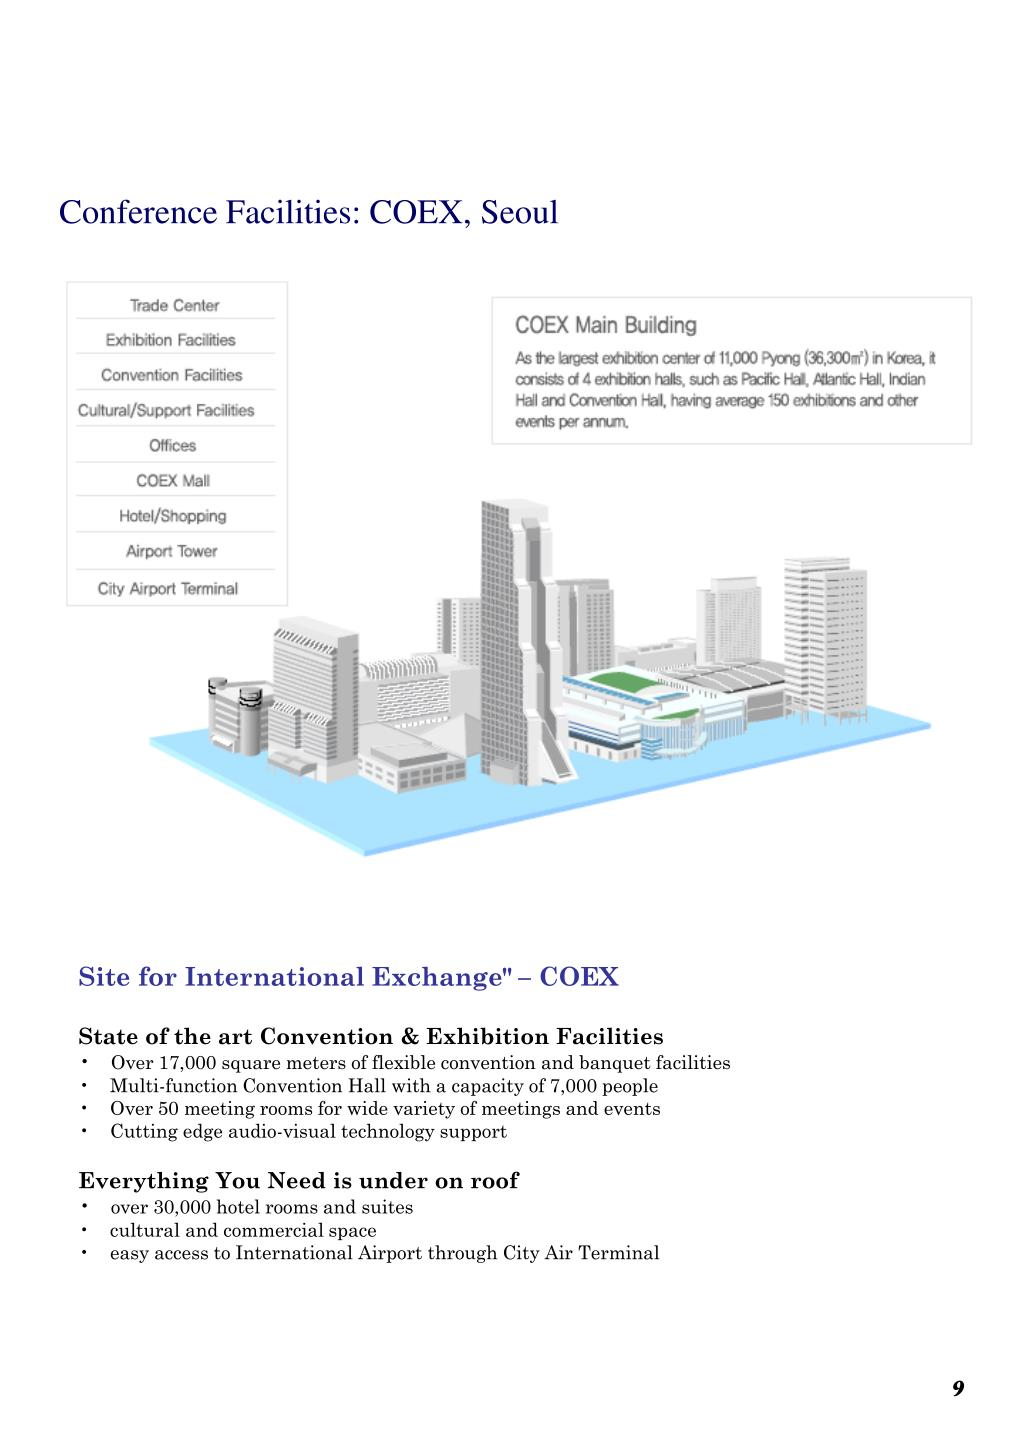 Conference Facilities: COEX, Seoul